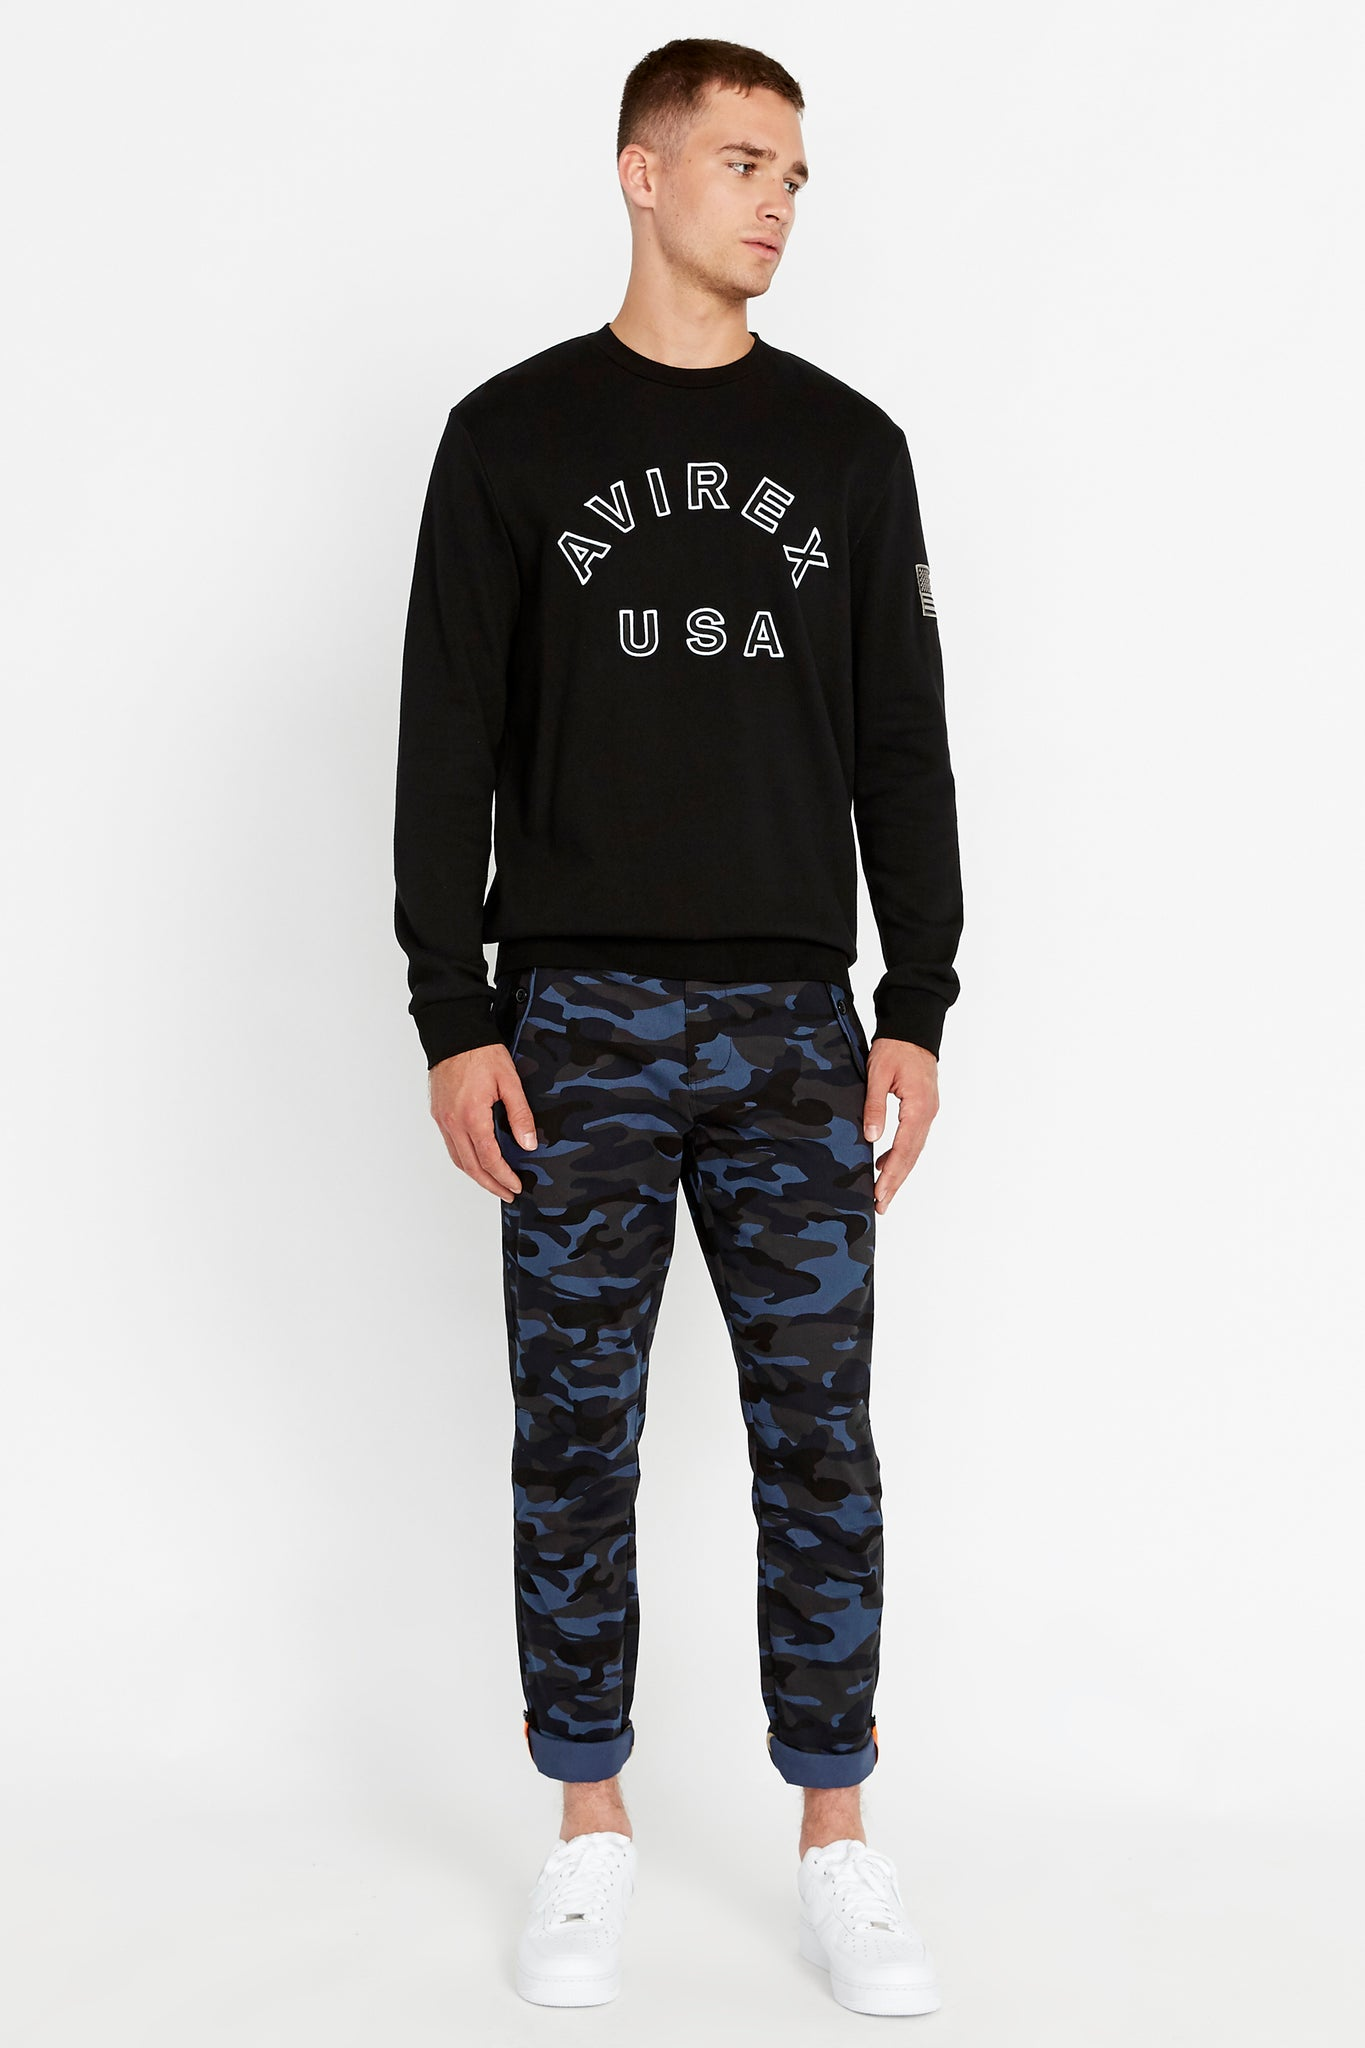 Full view of men wearing a black long sleeve crew neck sweater with bold front text and a patch on the left sleeve and blue camo print pants